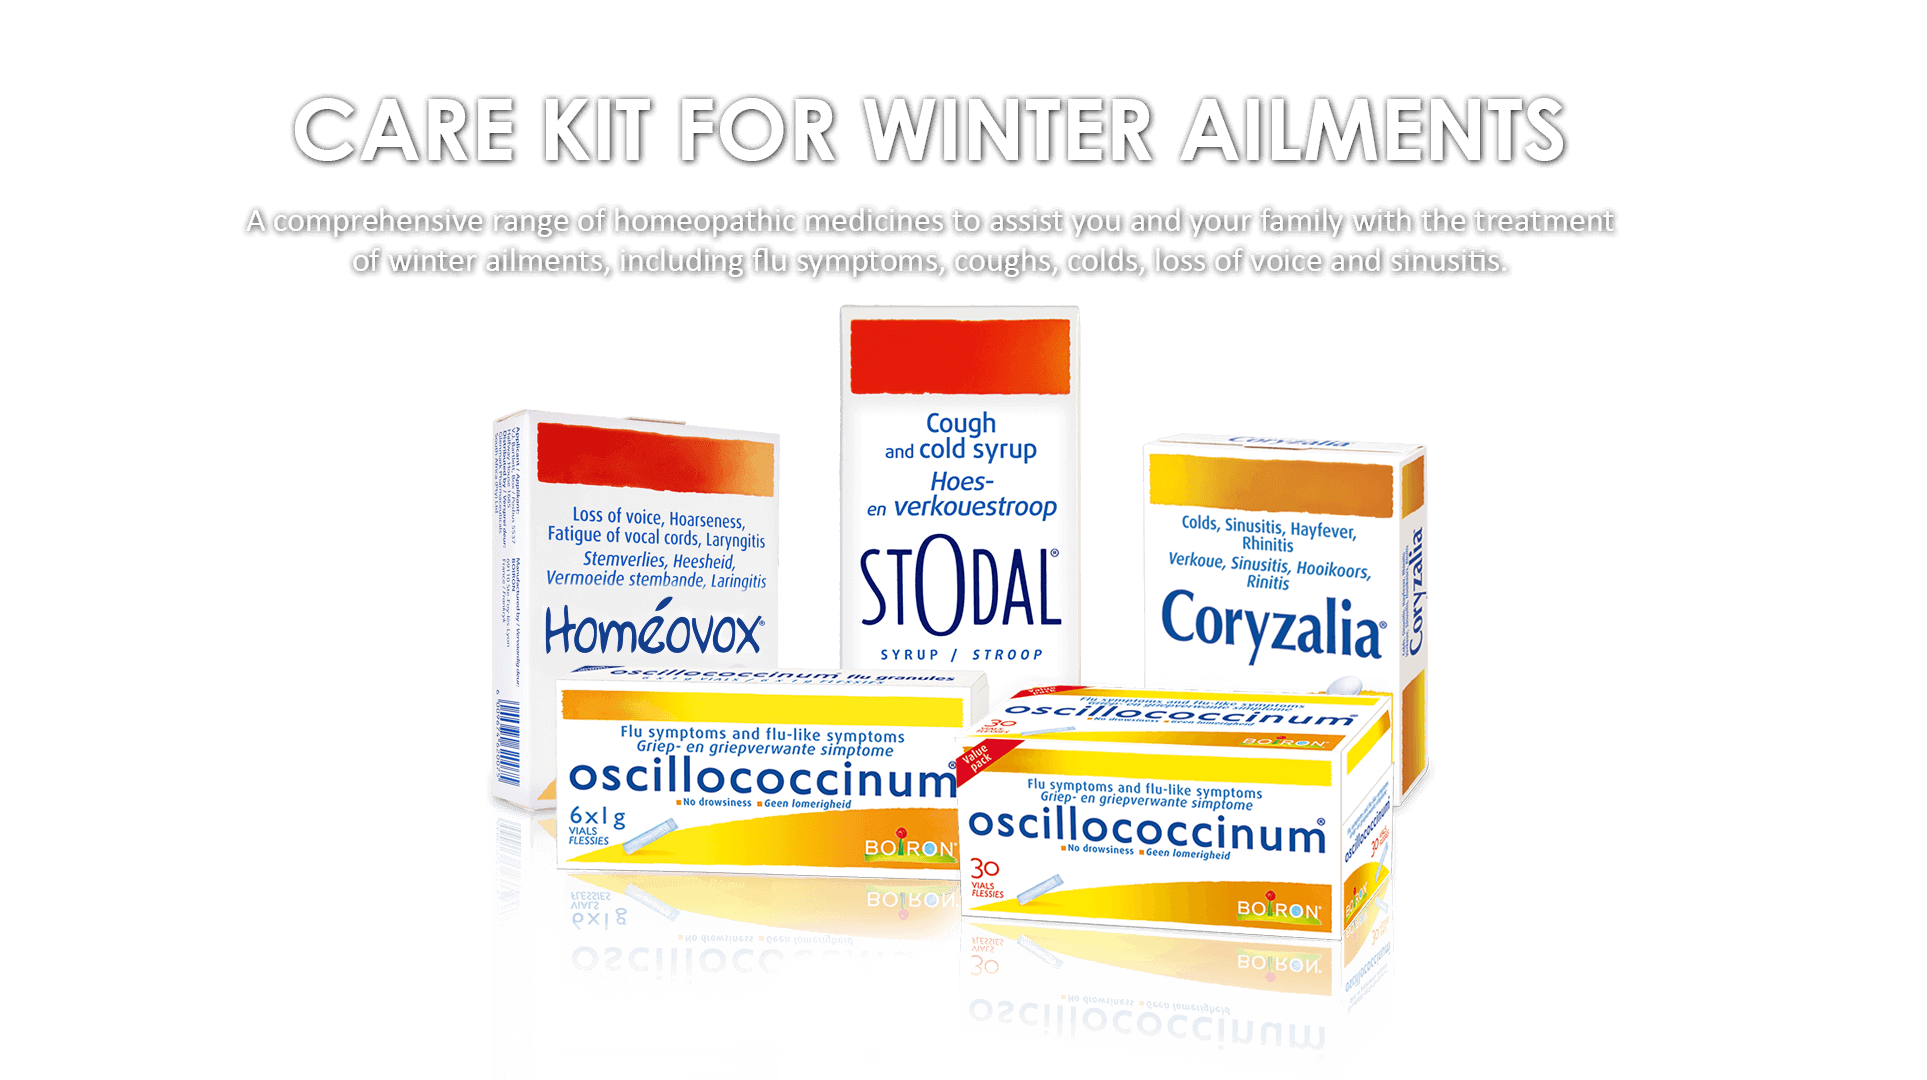 Care Kit for Winter Ailments